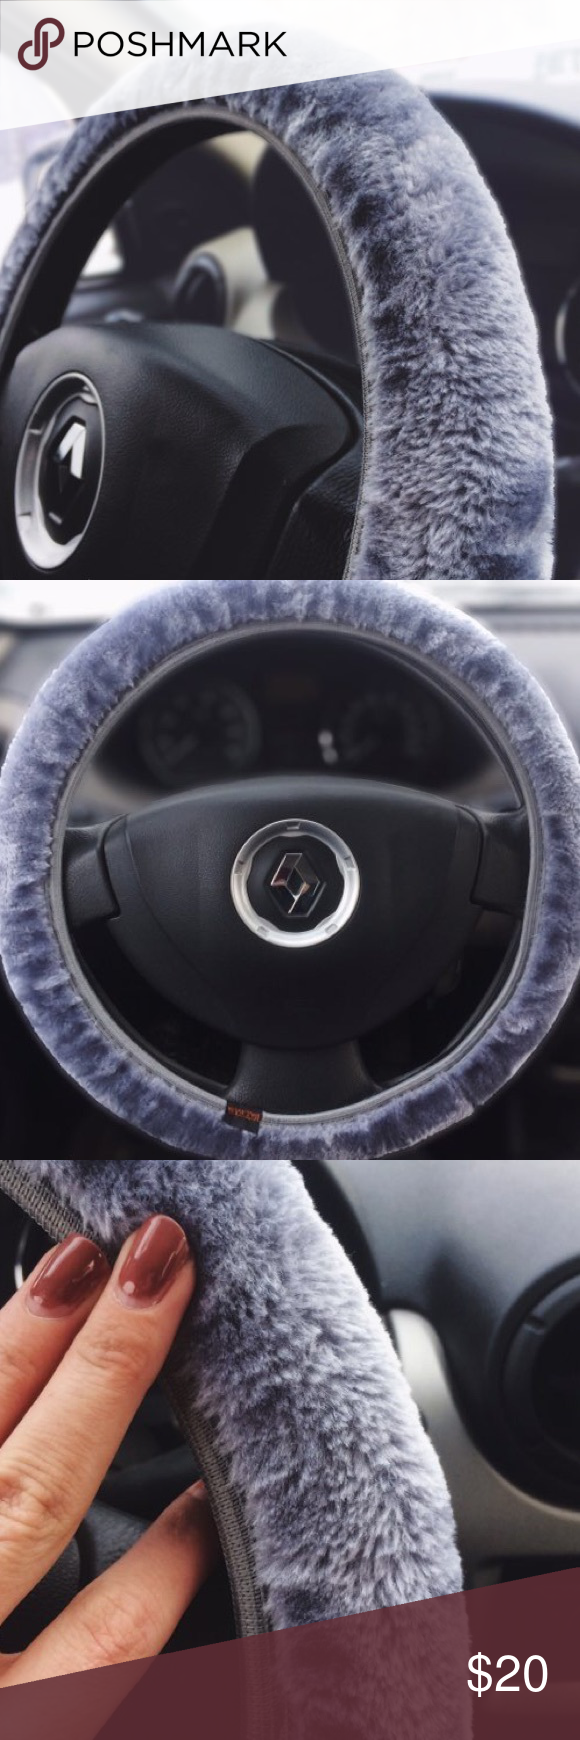 Faux Fur Steering Wheel Cover Wheel cover Wheels and Fur